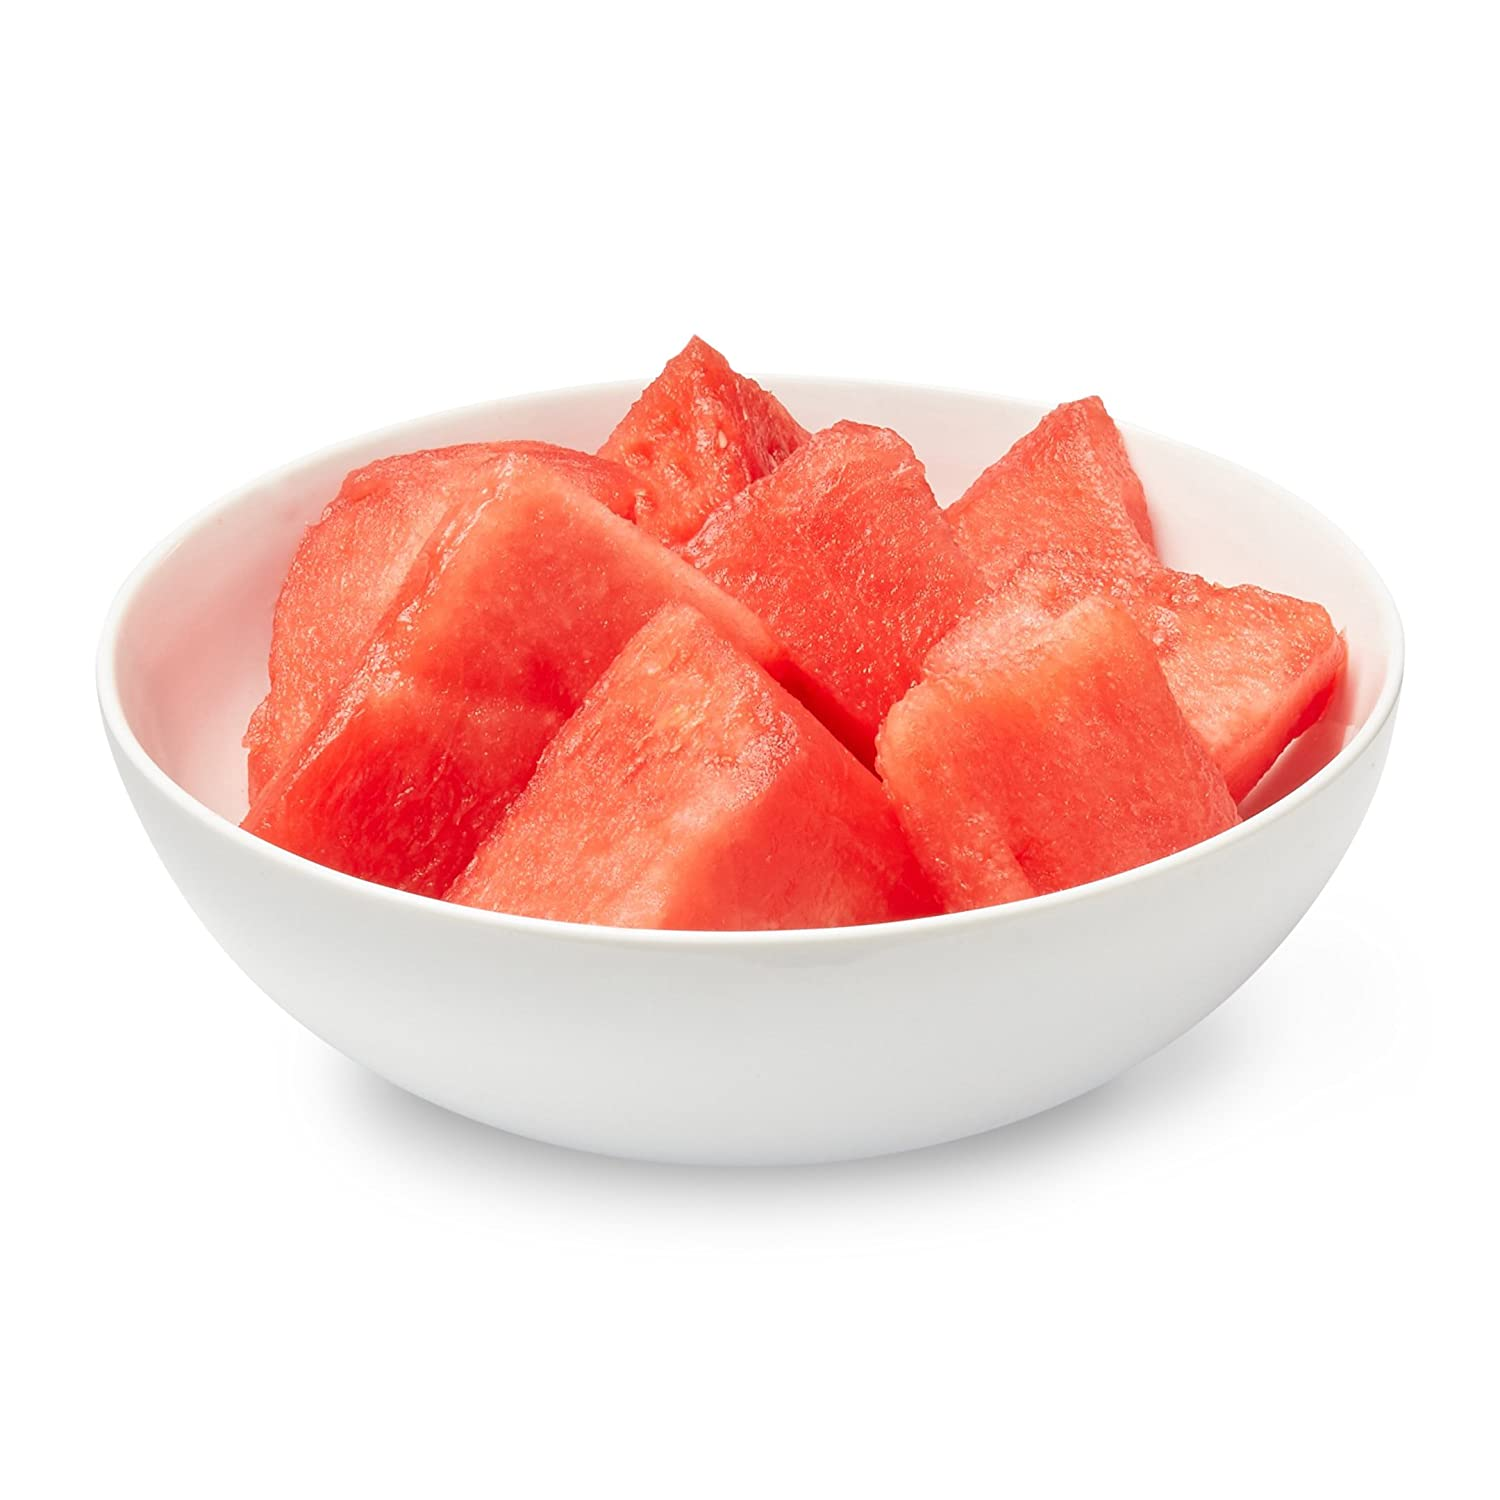 Ready Pac Fresh Watermelon Chunks, 2 lb: Amazon.com: Grocery & Gourmet Food